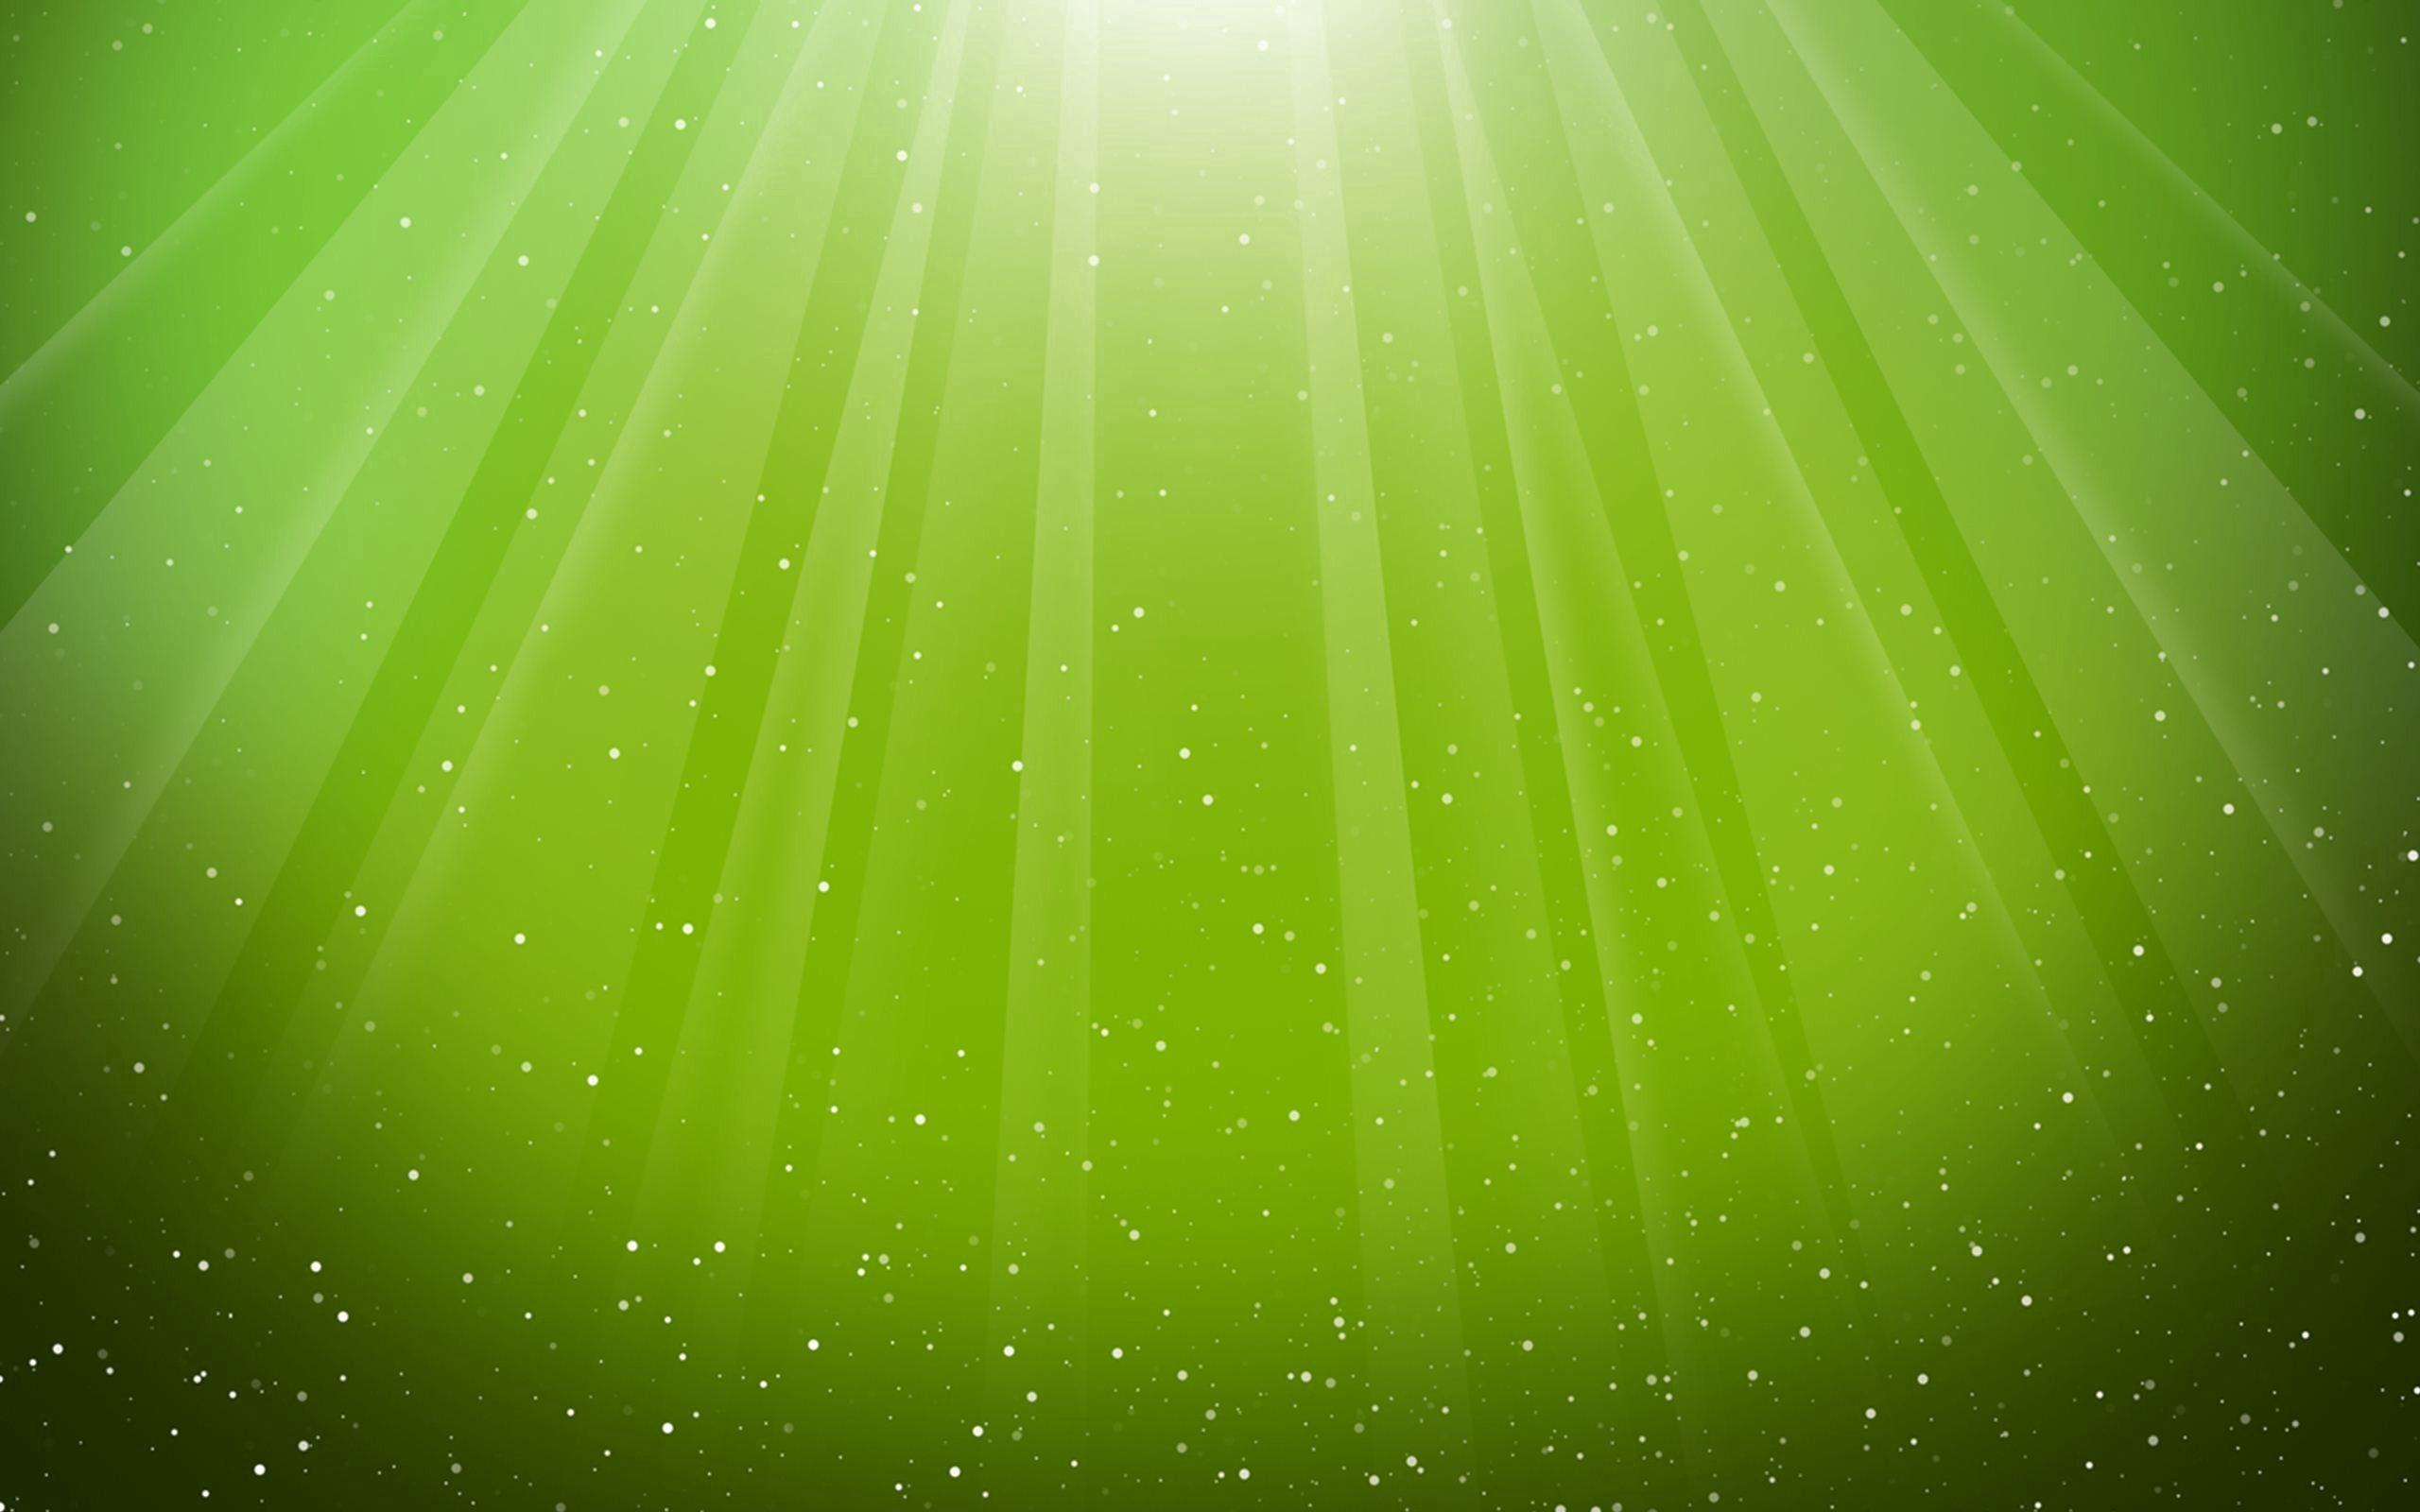 149731 download wallpaper Abstract, Shine, Light, Fan, Drops, Beams, Rays screensavers and pictures for free